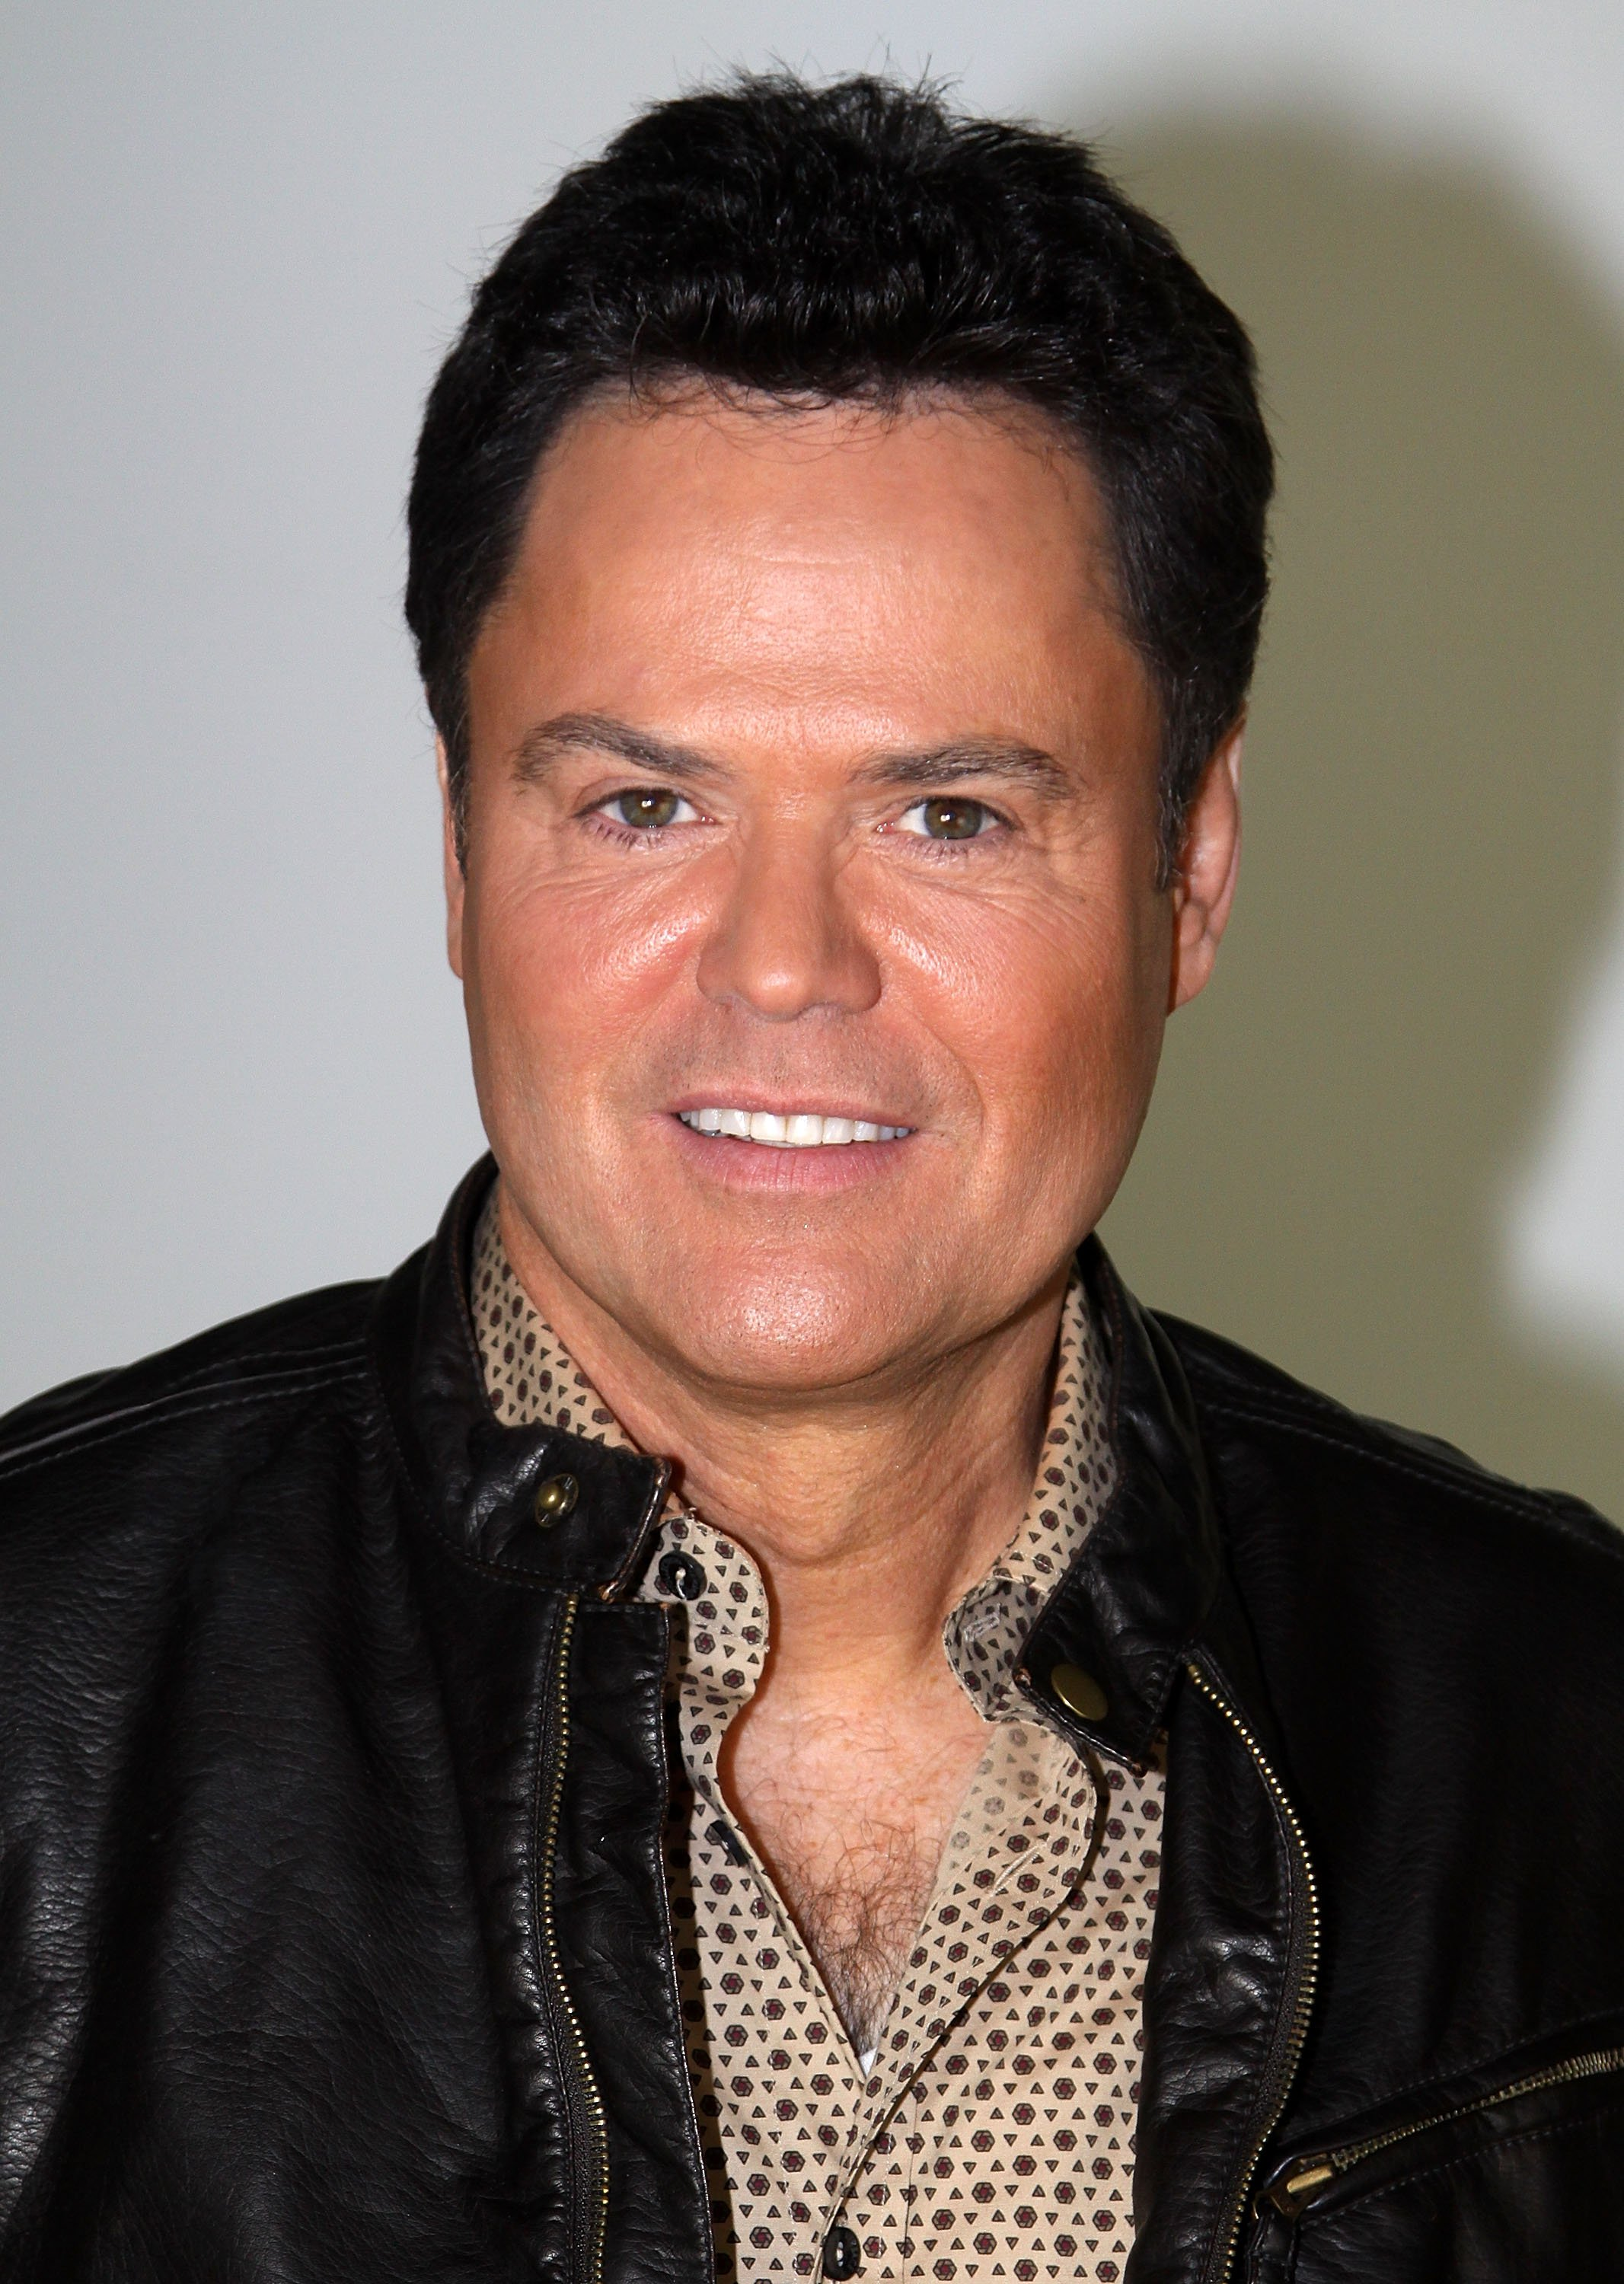 """Donny Osmond poses as he promotes """"A Broadway Christmas"""" at The Broadway.com Studios. 